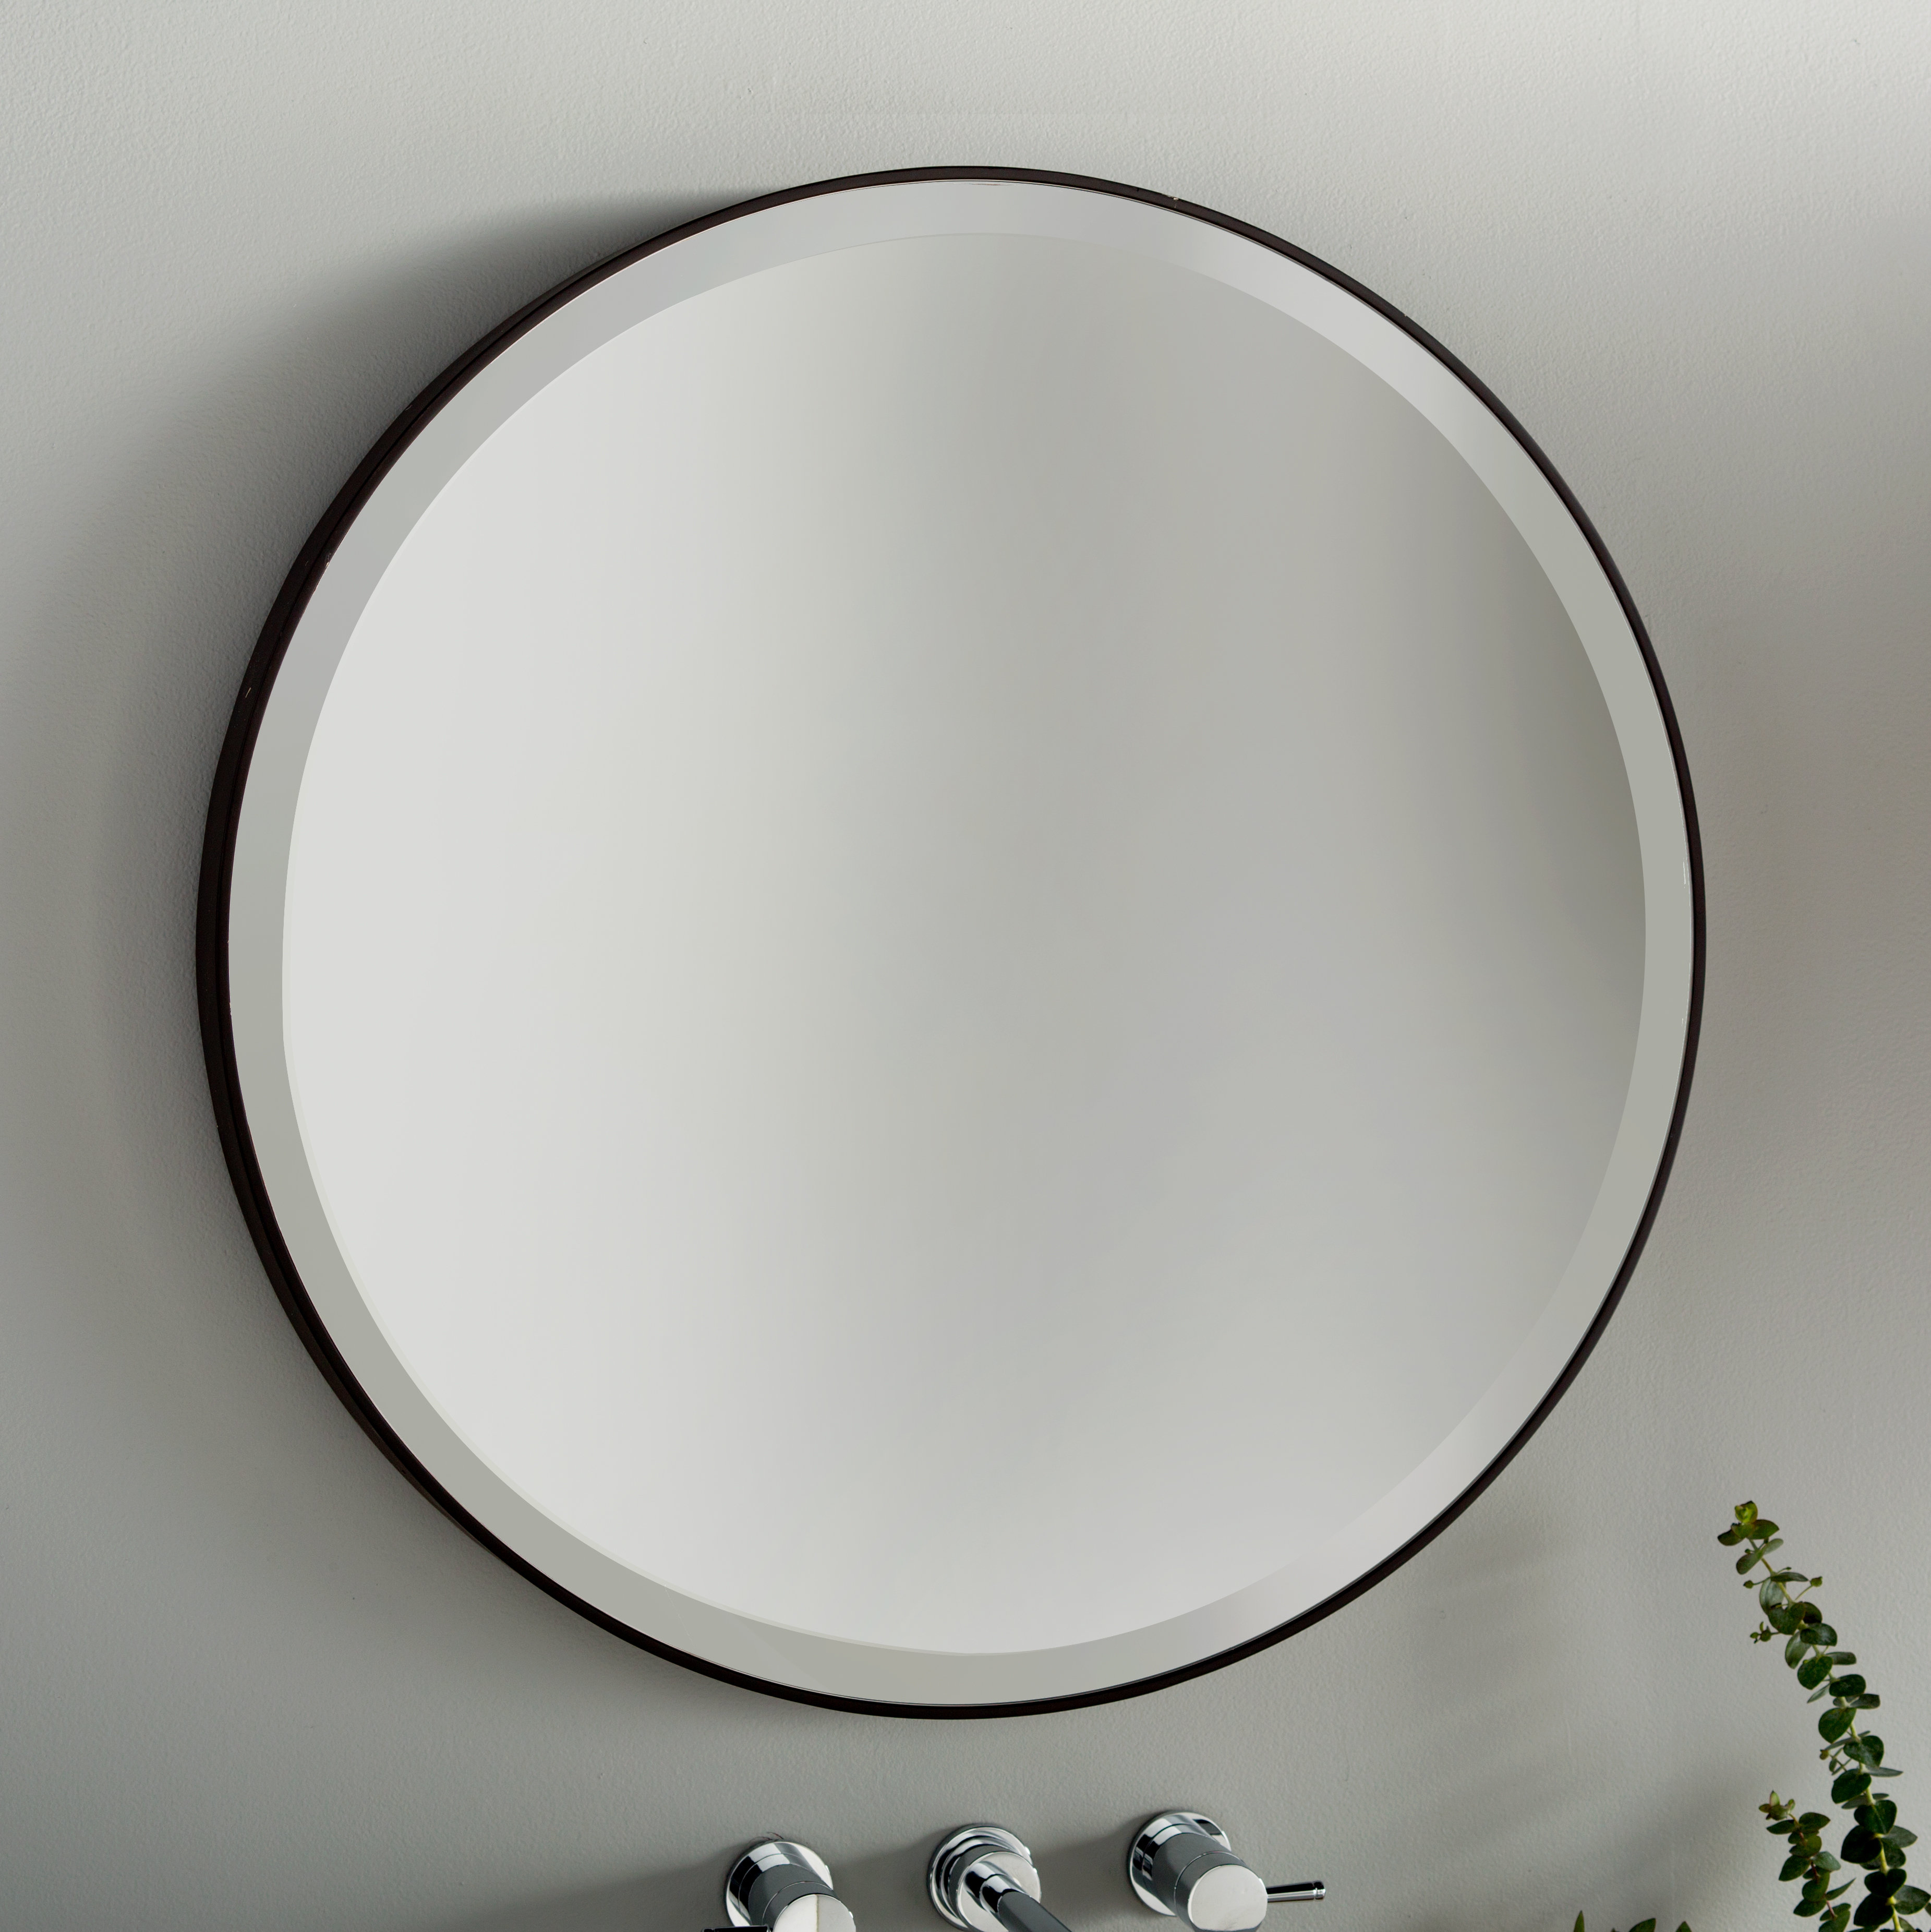 Modern & Contemporary Wall Mirror With Hooks | Allmodern Throughout Caja Rectangle Glass Frame Wall Mirrors (View 18 of 30)